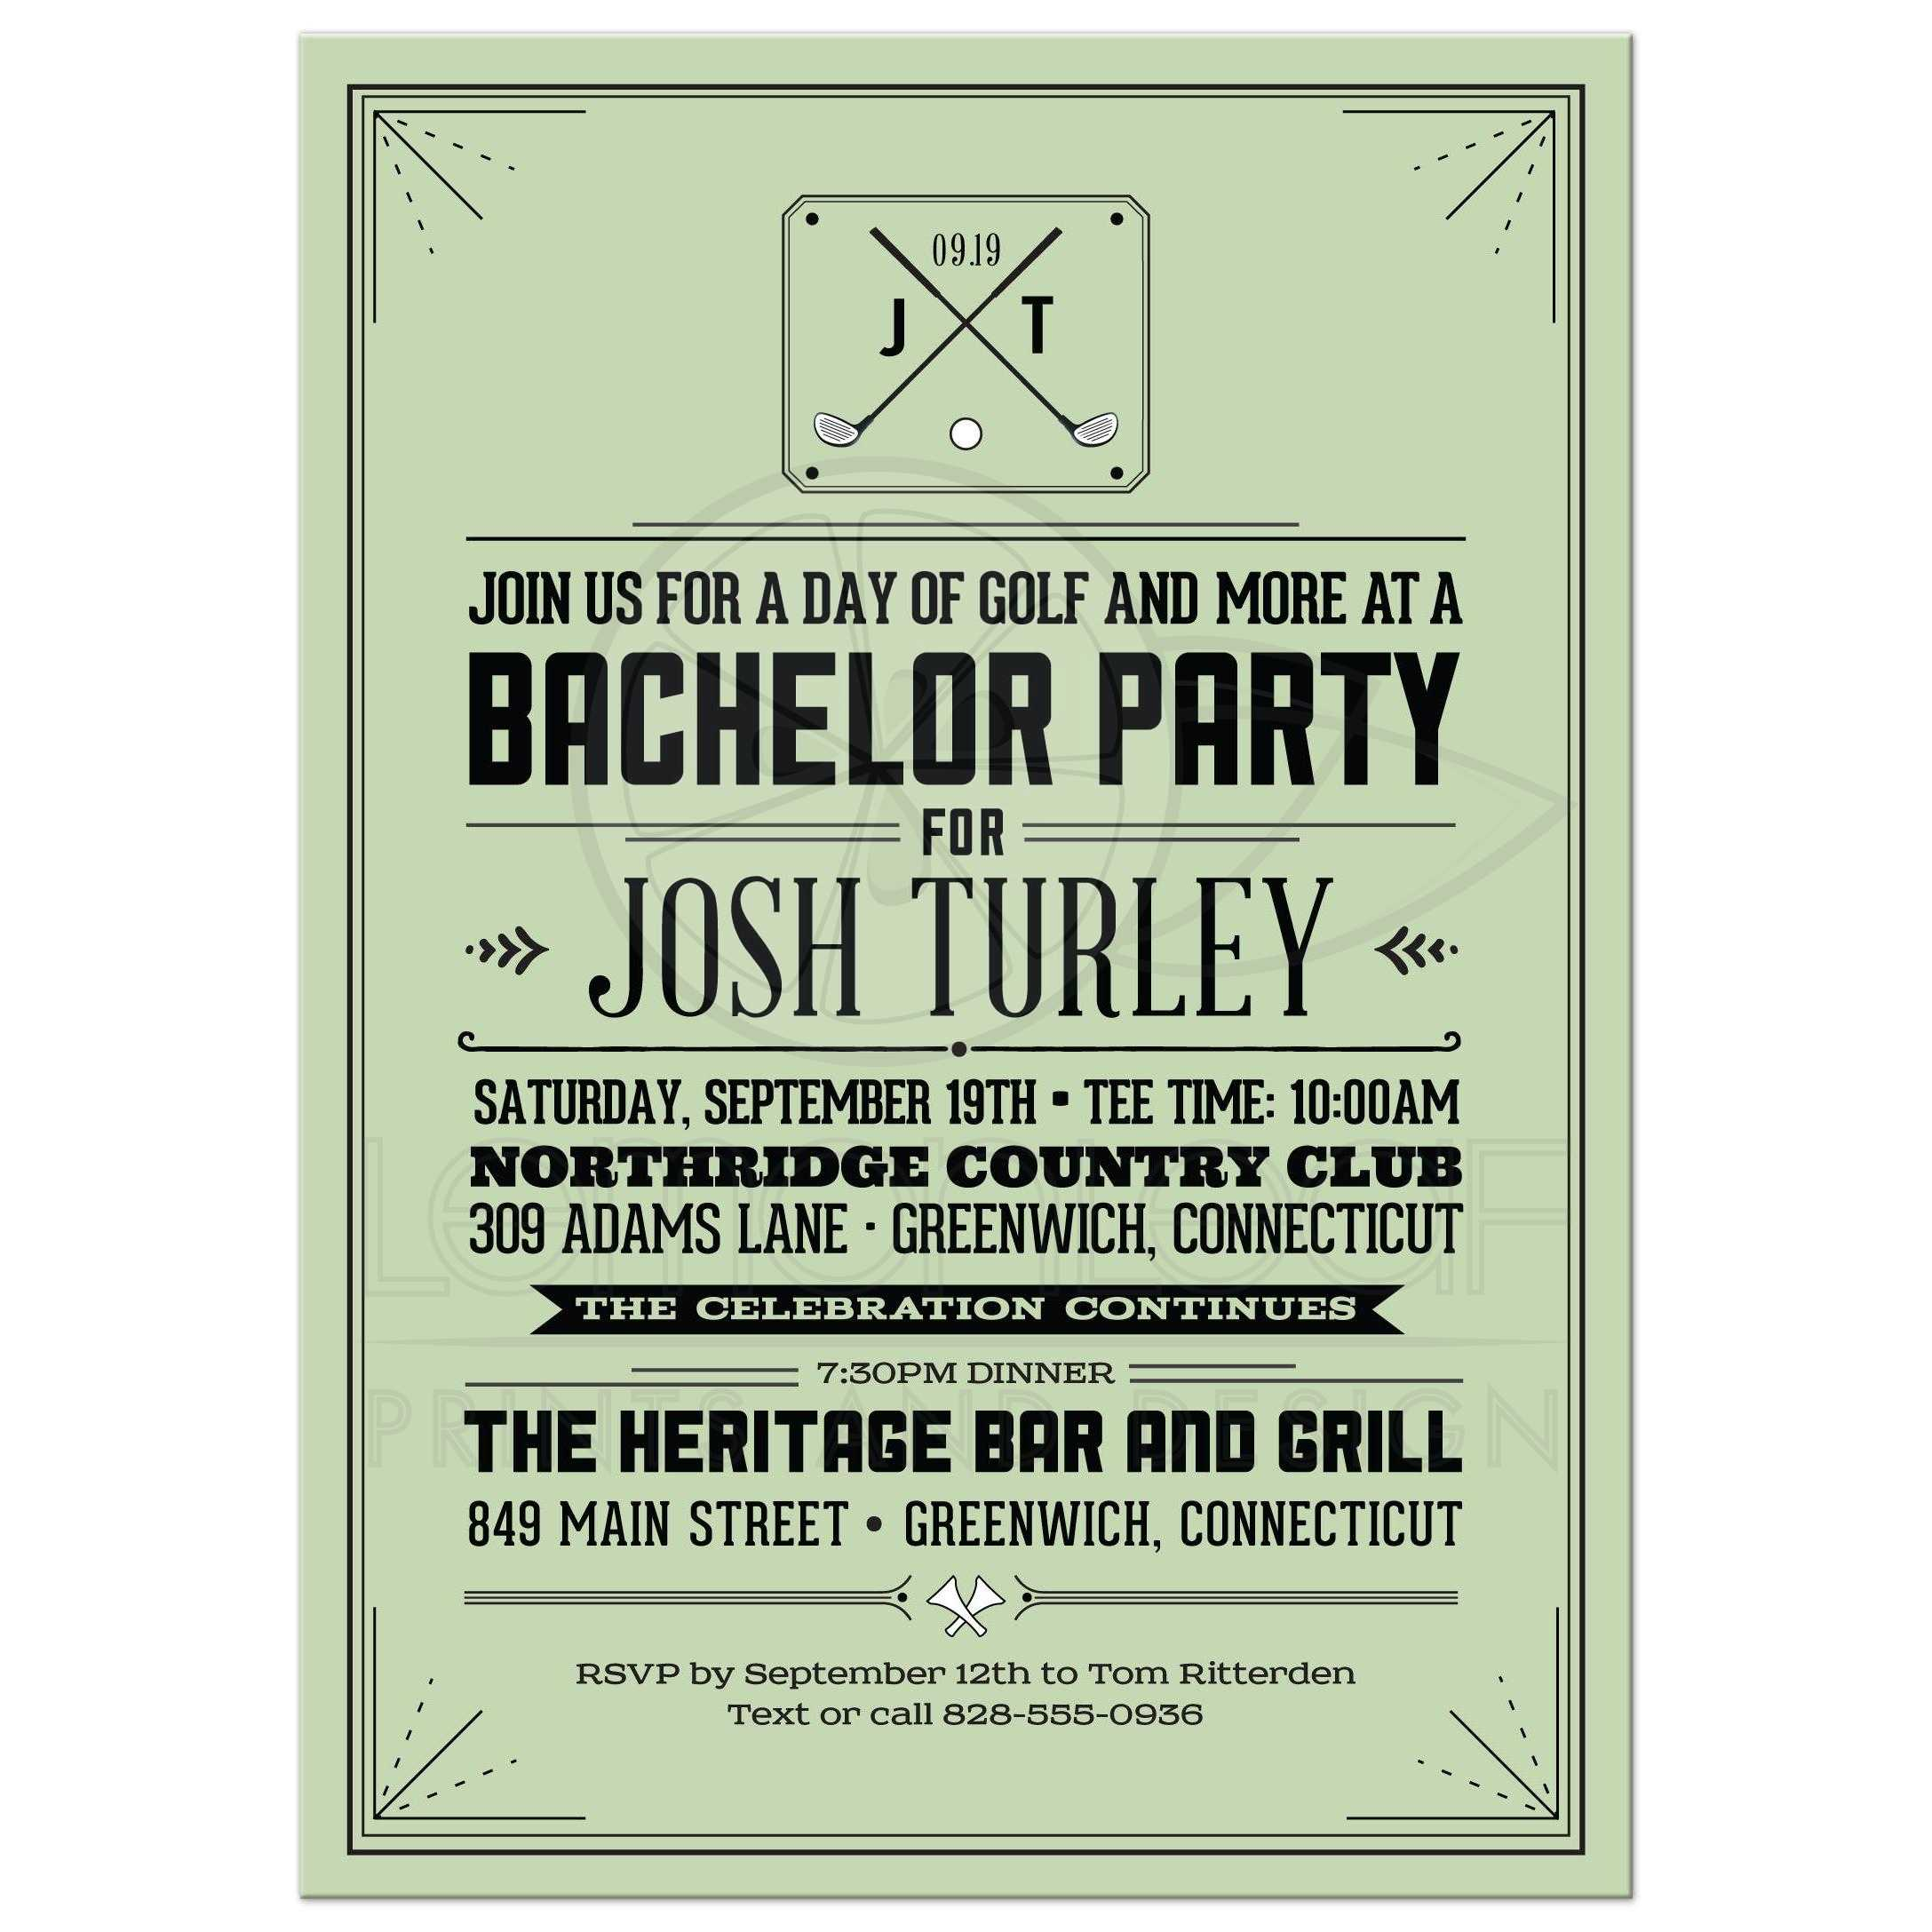 Party invitation retro hipster golf bachelor party invitation retro hipster golf monicamarmolfo Choice Image